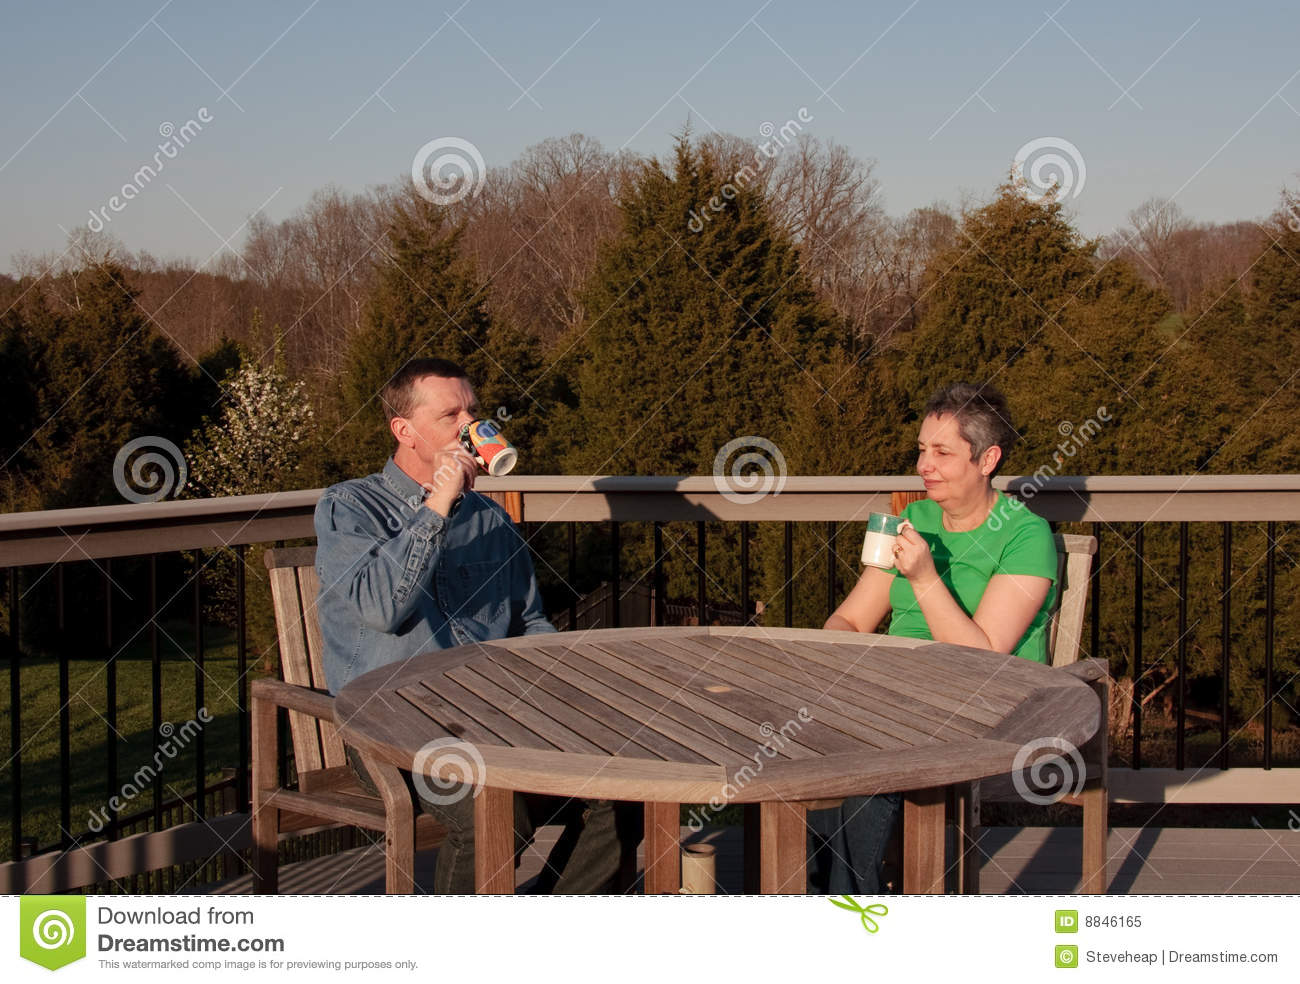 Middle-aged couple relaxing on deck